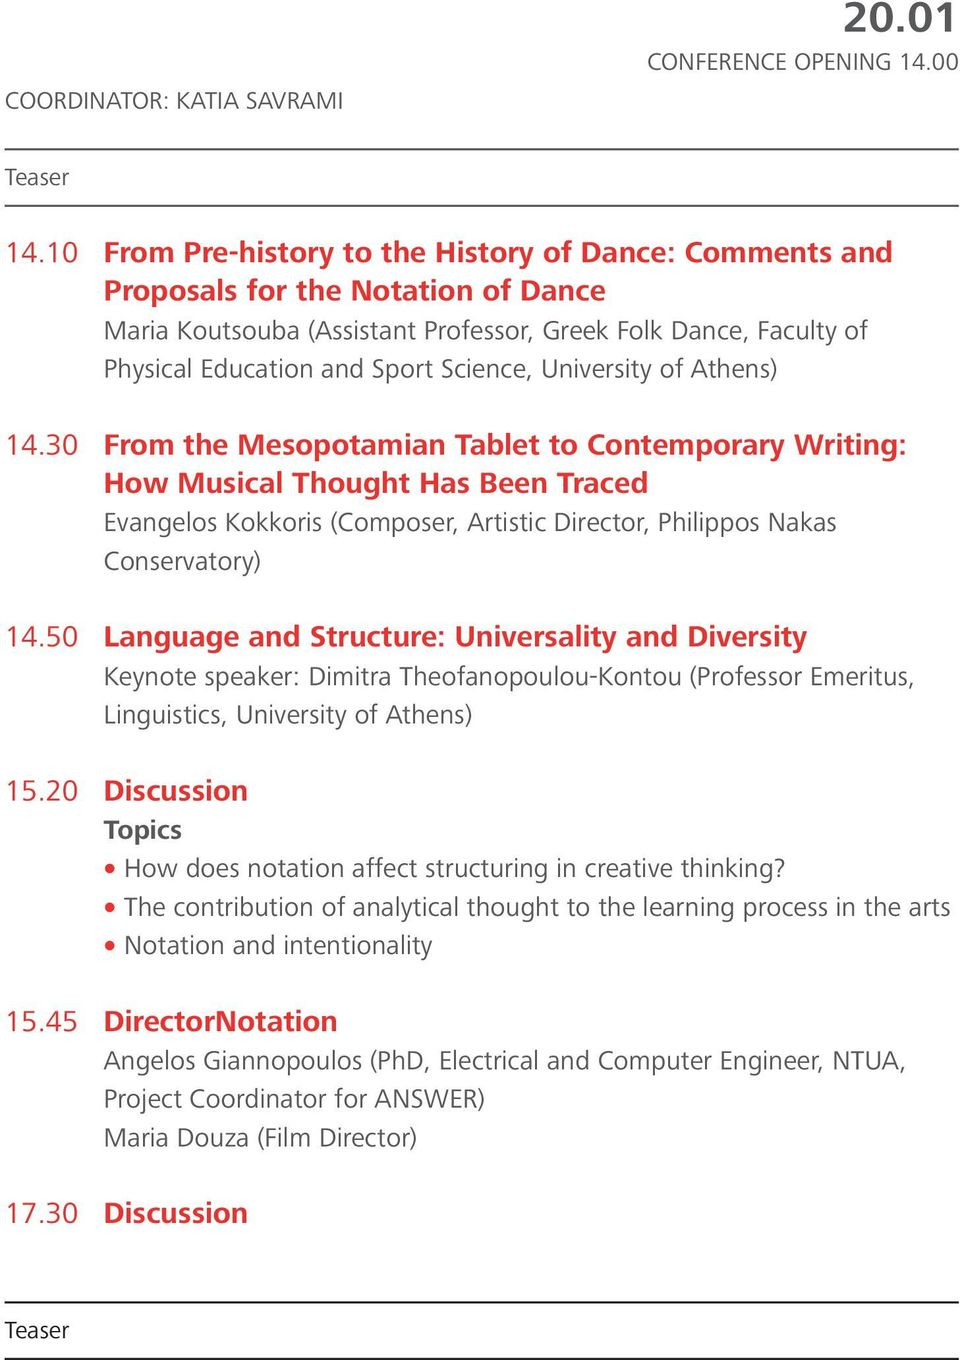 University of Athens) 14.30 From the Mesopotamian Tablet to Contemporary Writing: How Musical Thought Has Been Traced Evangelos Kokkoris (Composer, Artistic Director, Philippos Nakas Conservatory) 14.